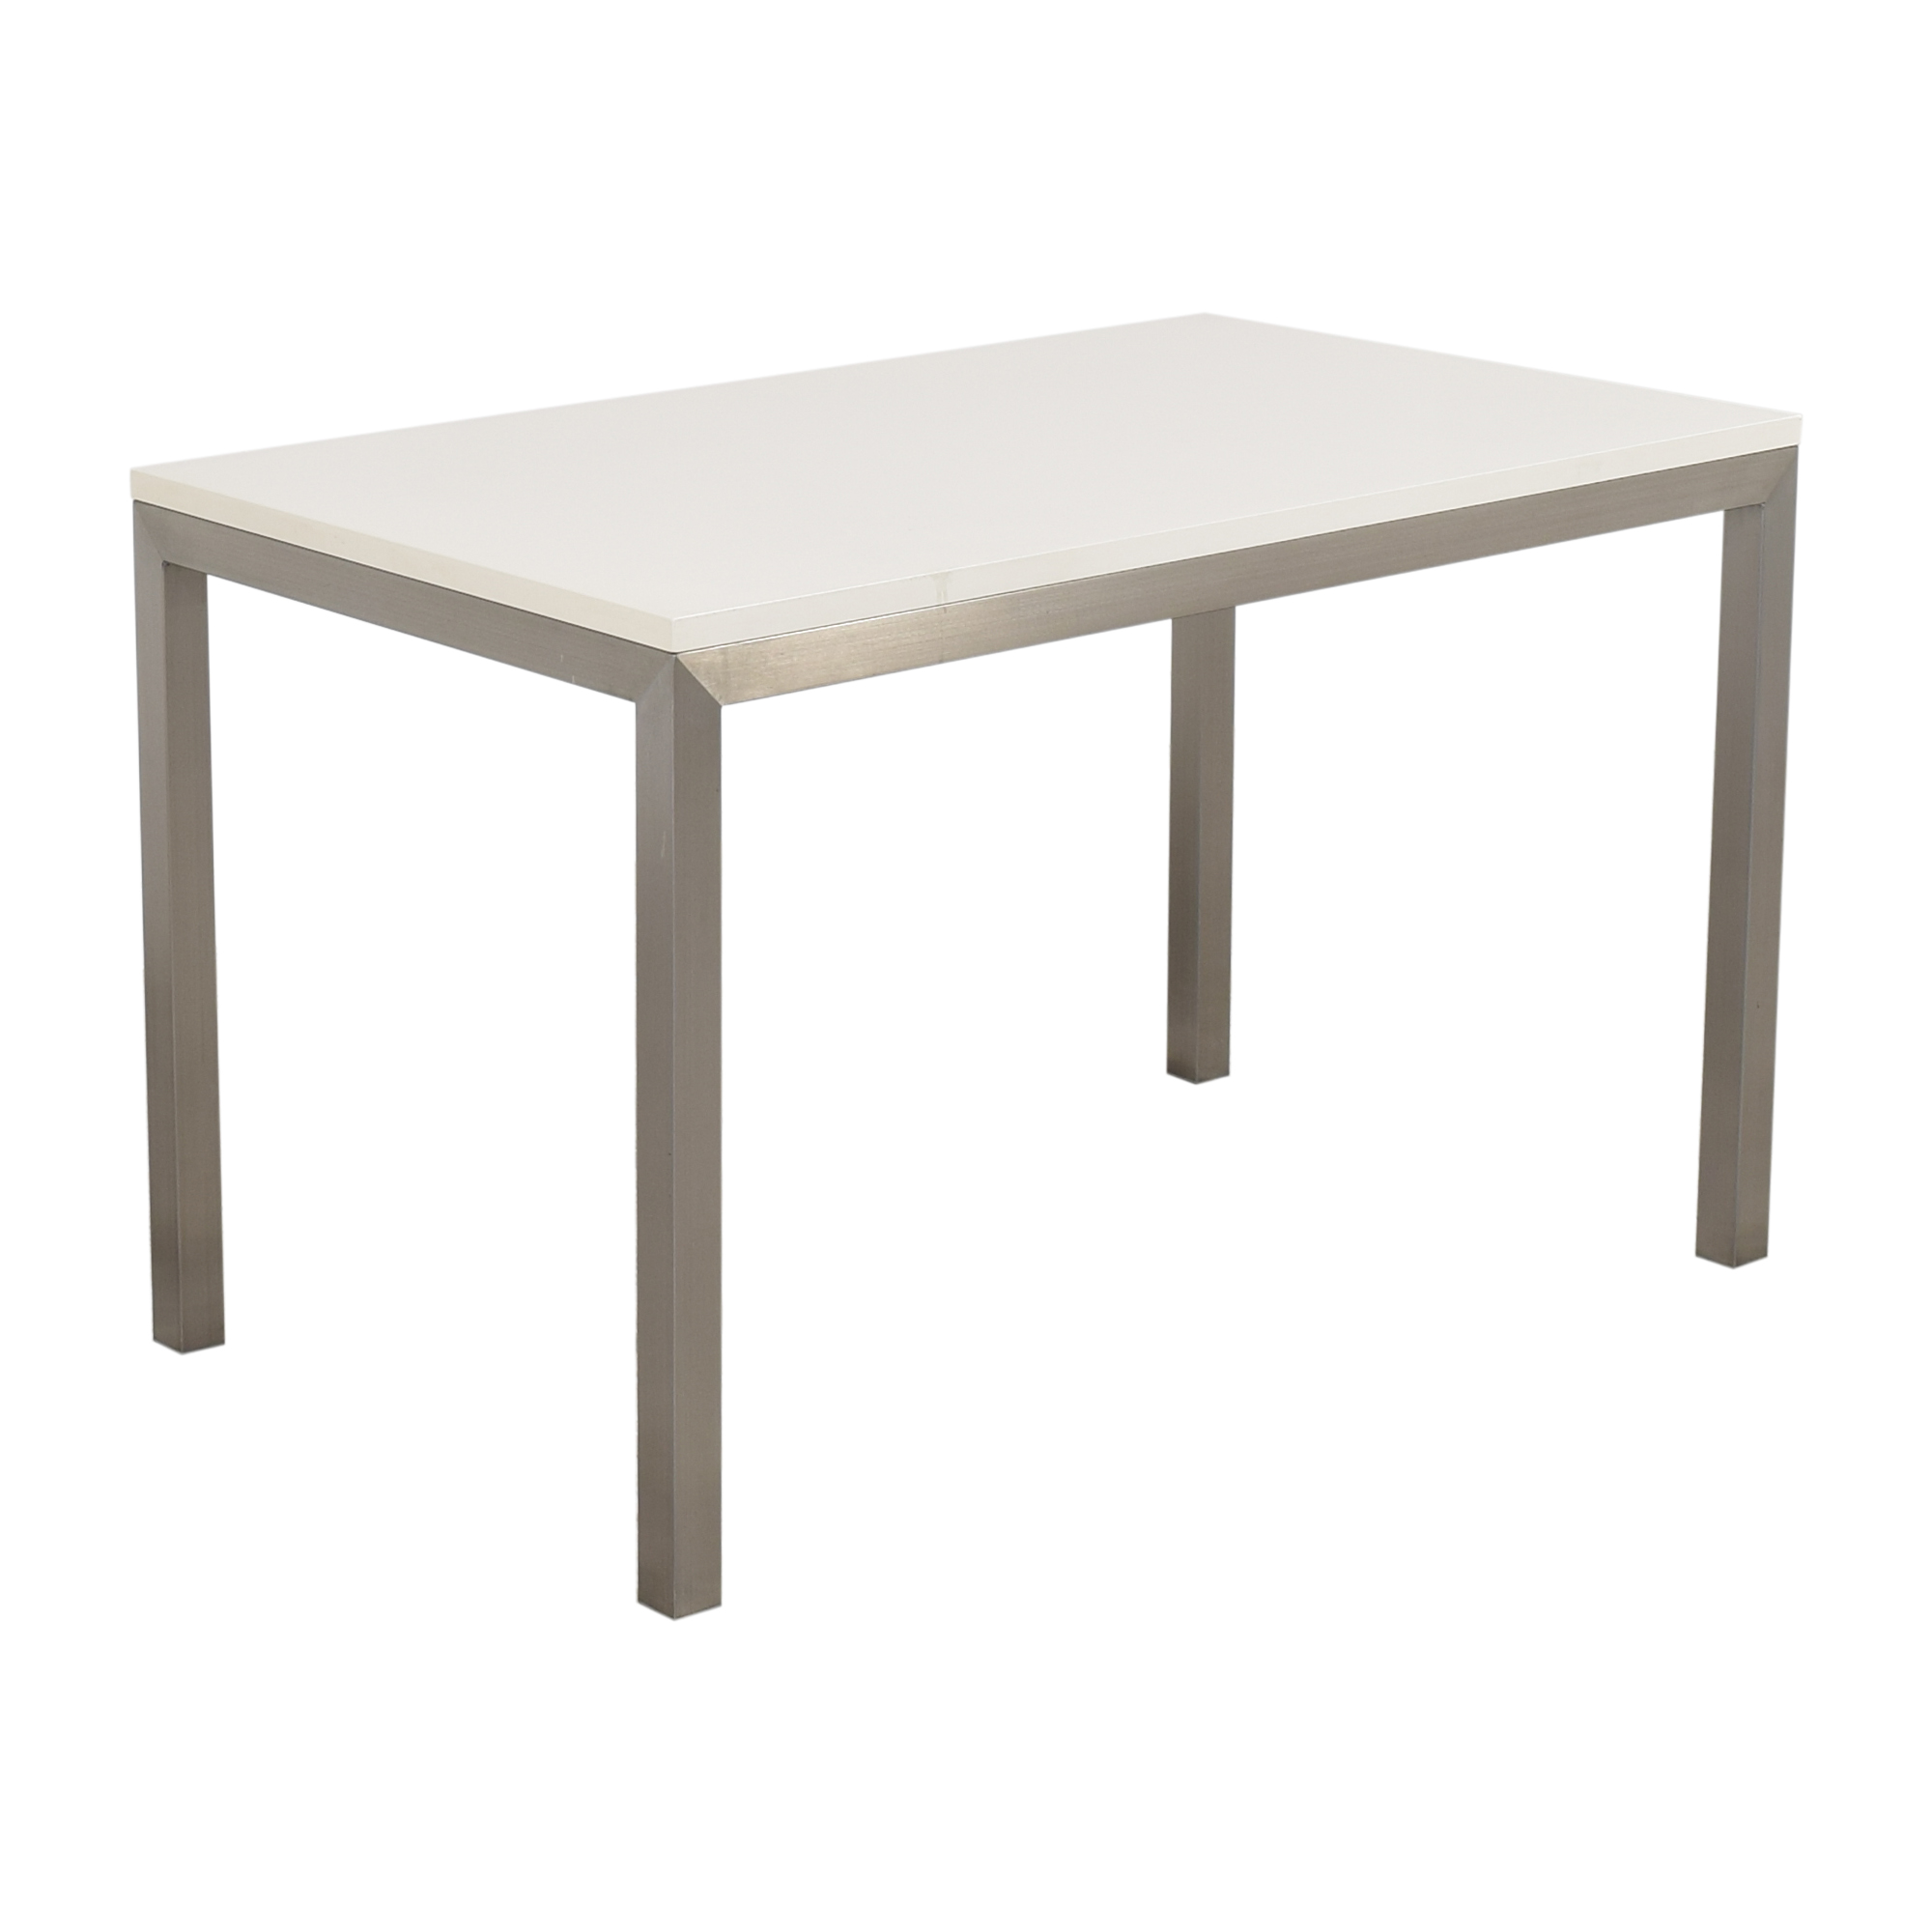 Crate & Barrel Crate & Barrel Parsons Table Tables